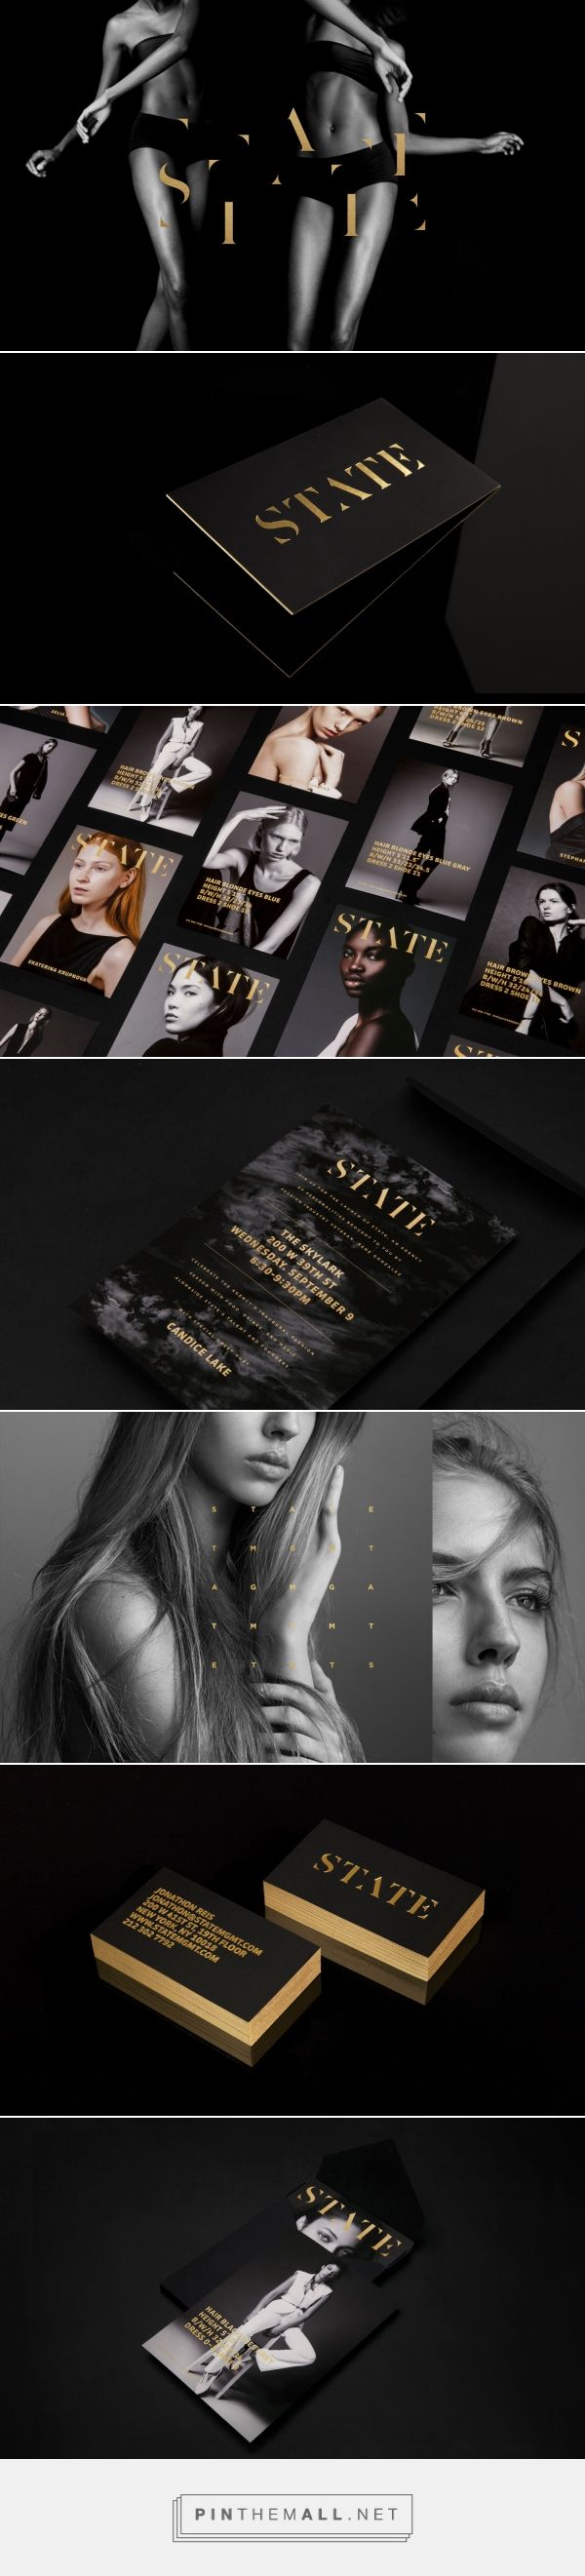 State Modeling Agency Branding by FAREWELL   Fivestar Branding Agency – Design and Branding Agency & Inspiration Gallery